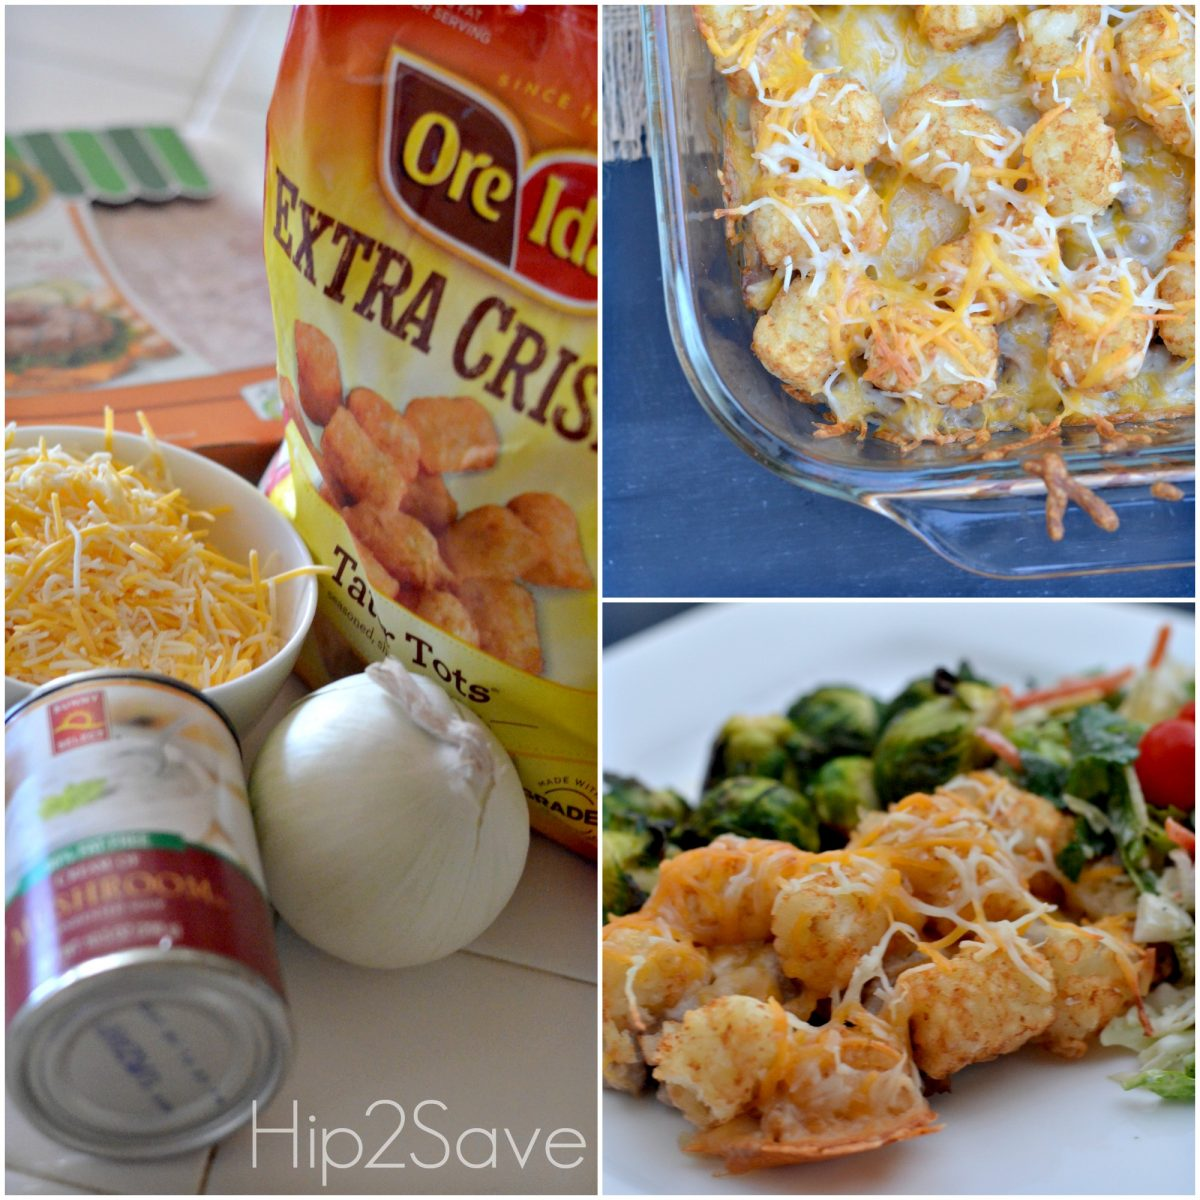 How to make tater tot casserole Hip2Save